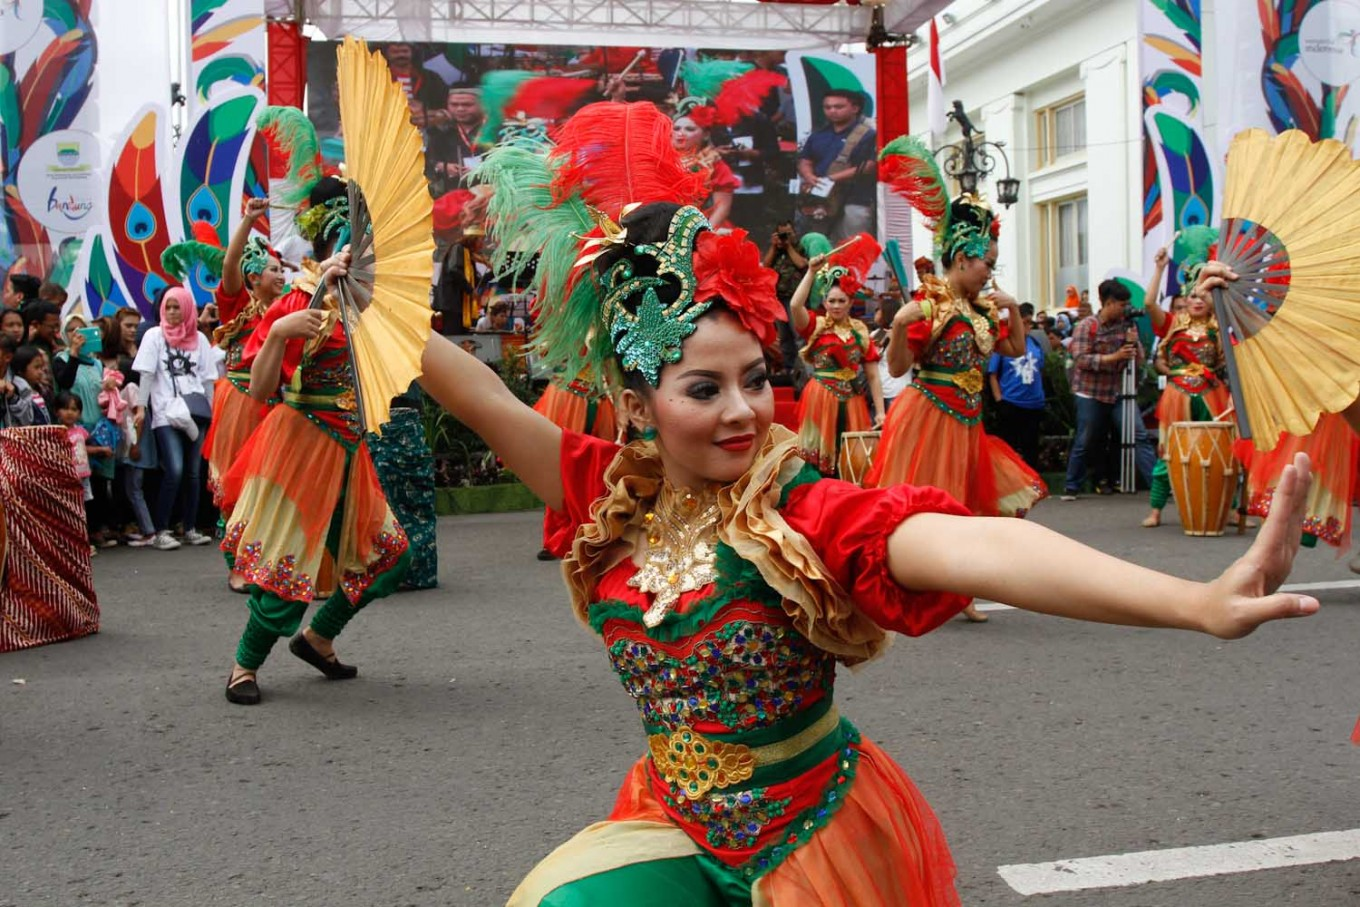 Performers dance the rampak kendang before the opening ceremony of the Asia-Africa Carnival 2016, held to mark the 61st anniversary of the Asia-Africa Conference in Bandung.